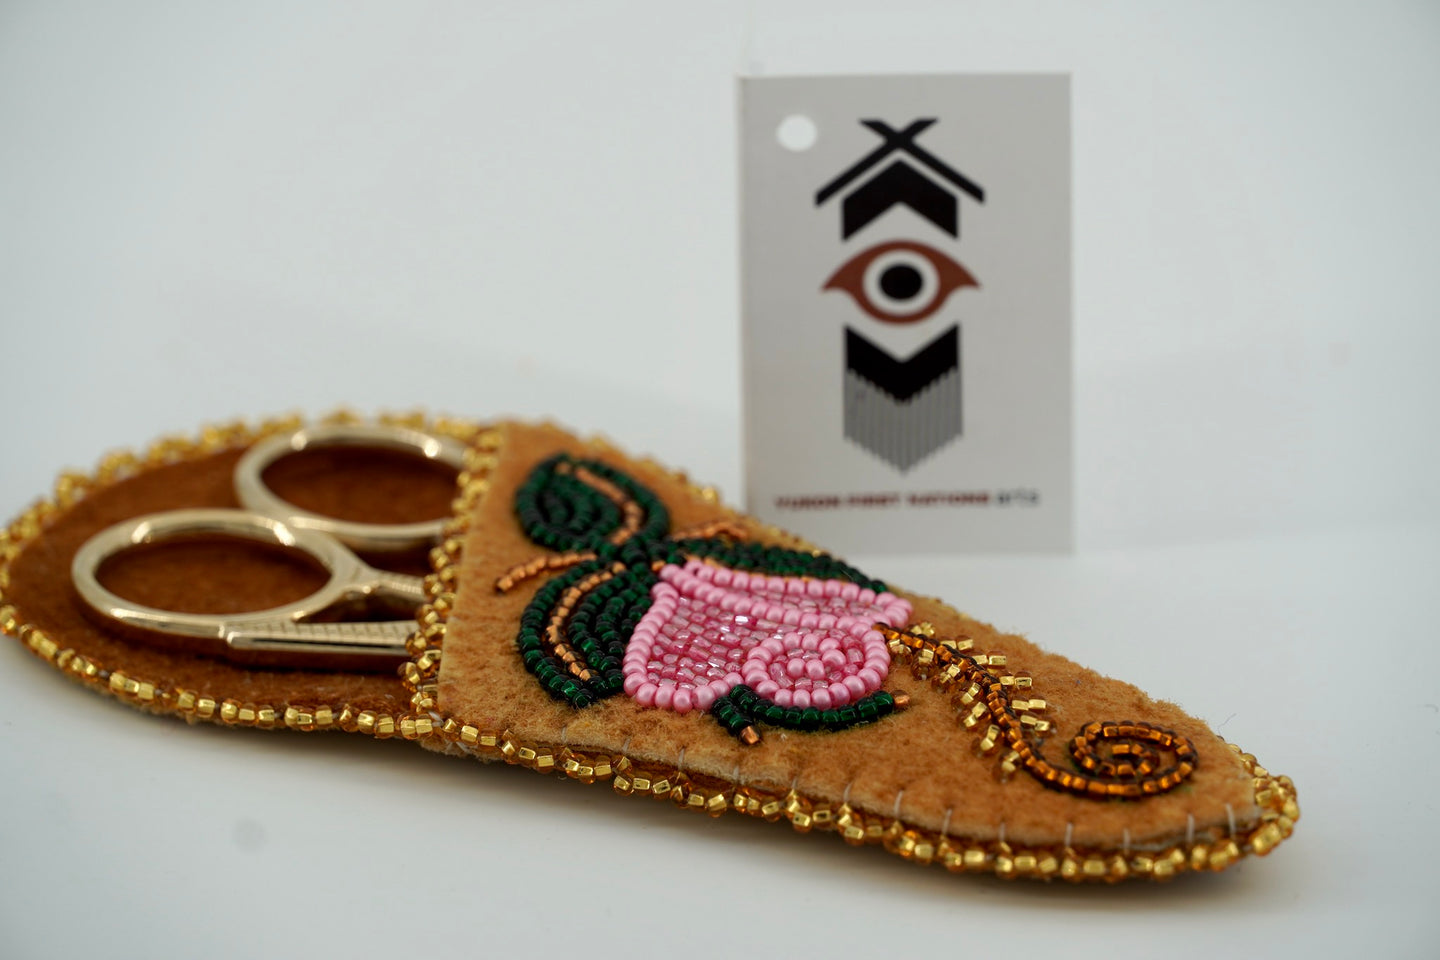 Embroidery Scissors with Beaded Hide Case by Sharon Vittrekwa